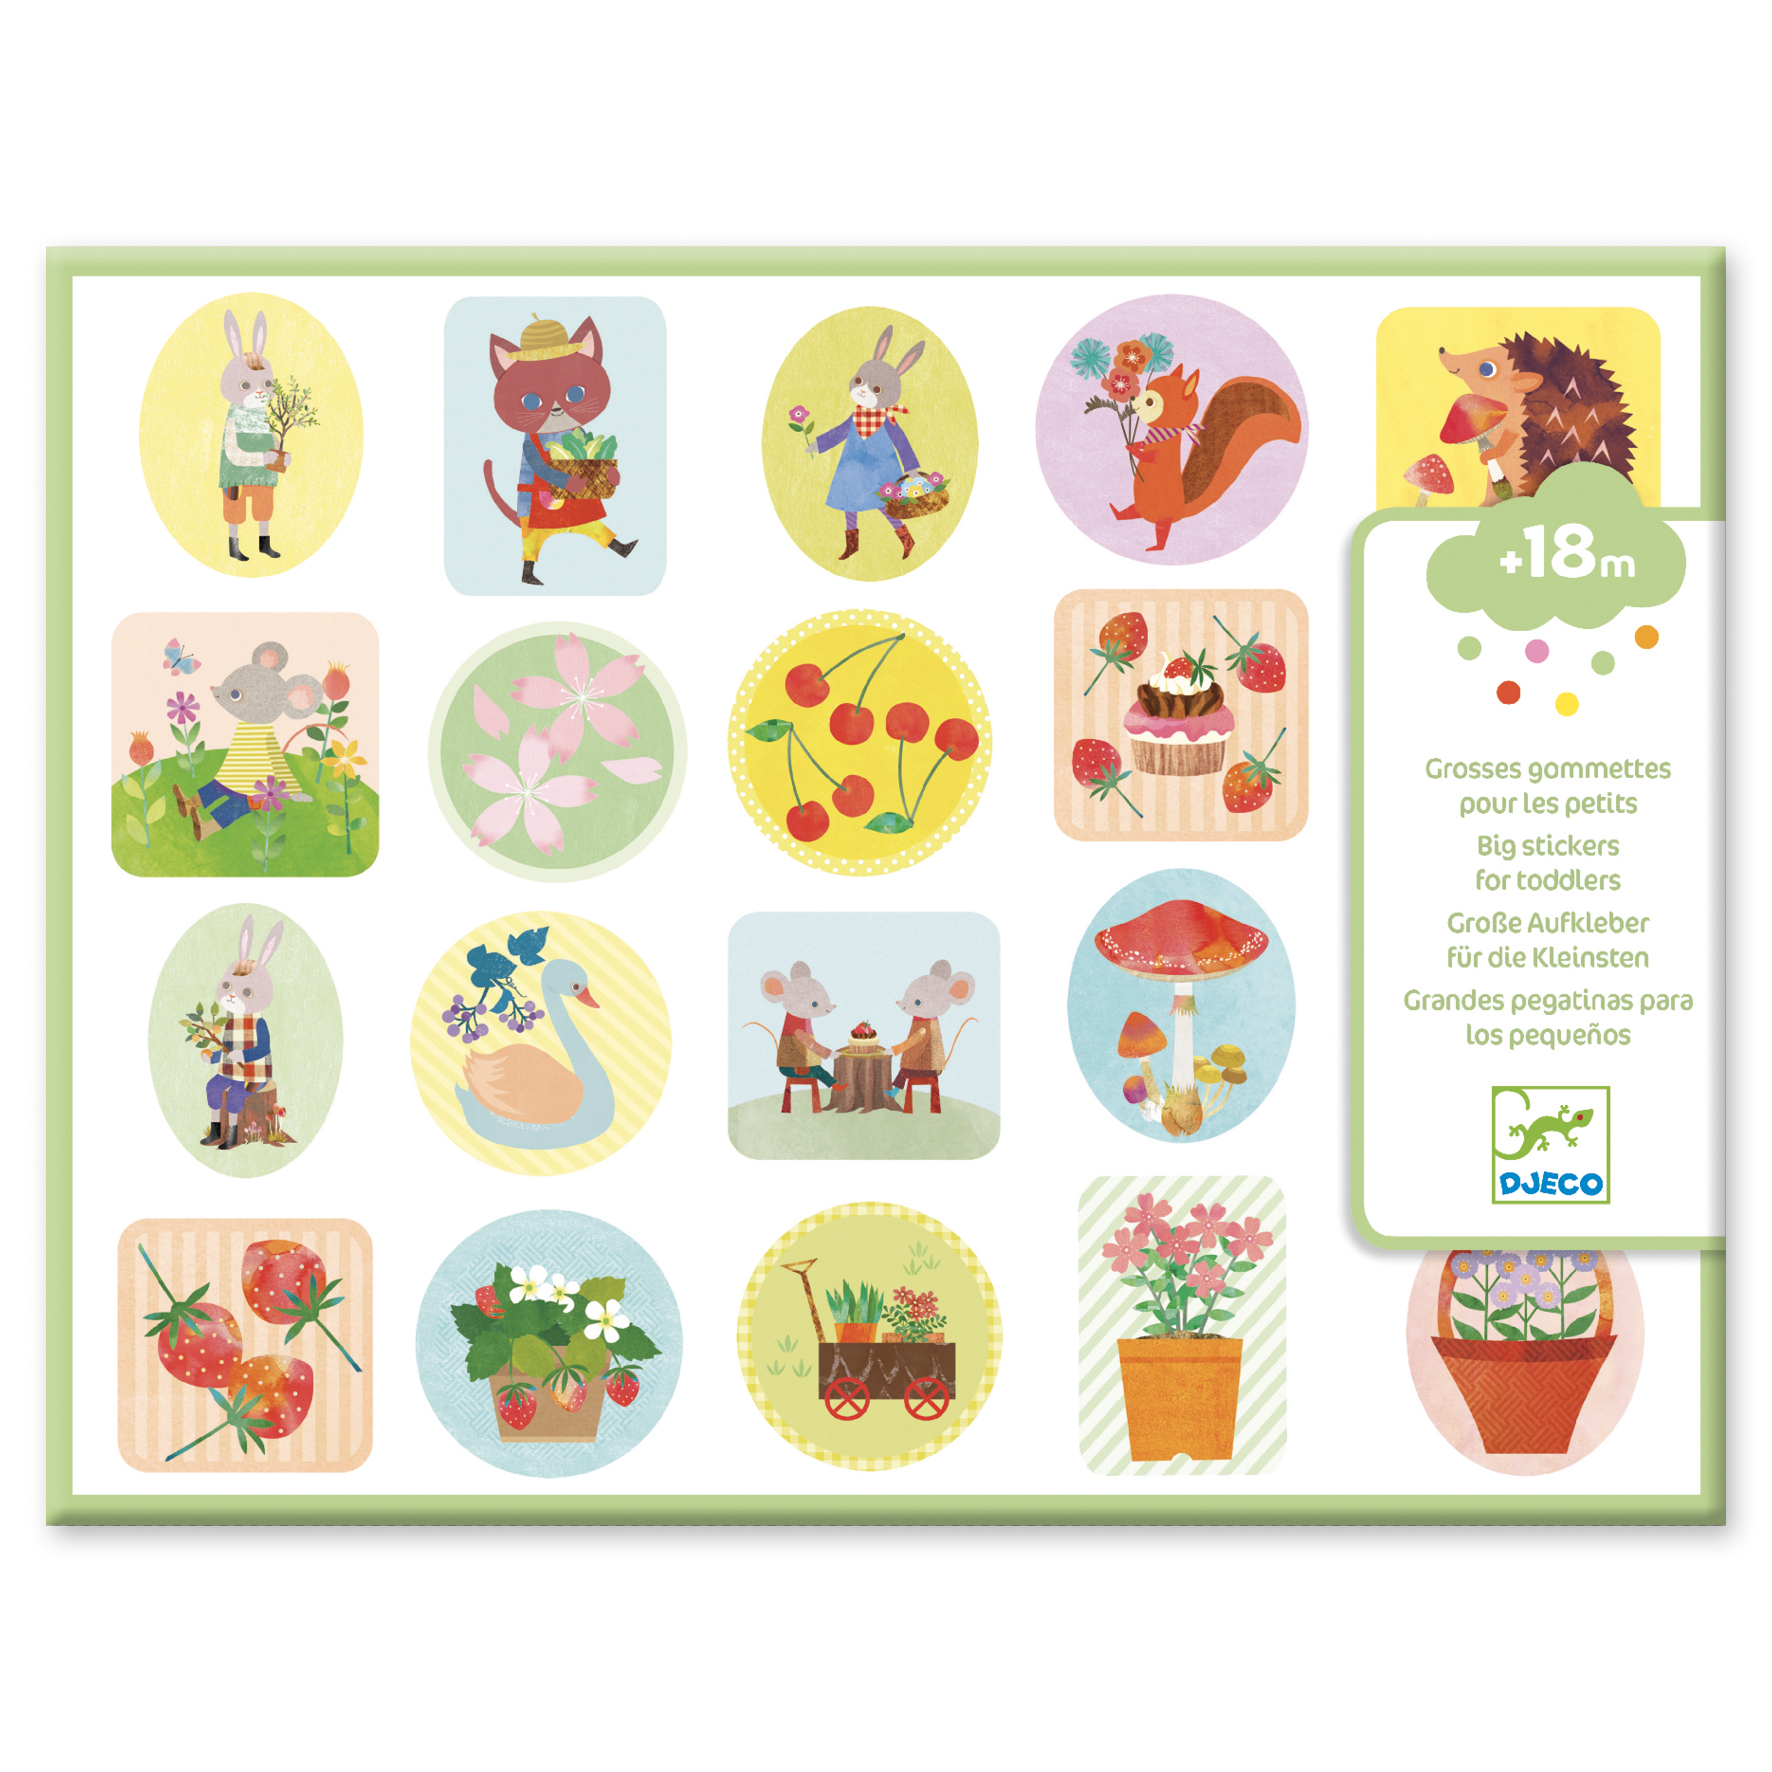 Big Garden Stickers for Toddlers from Djeco